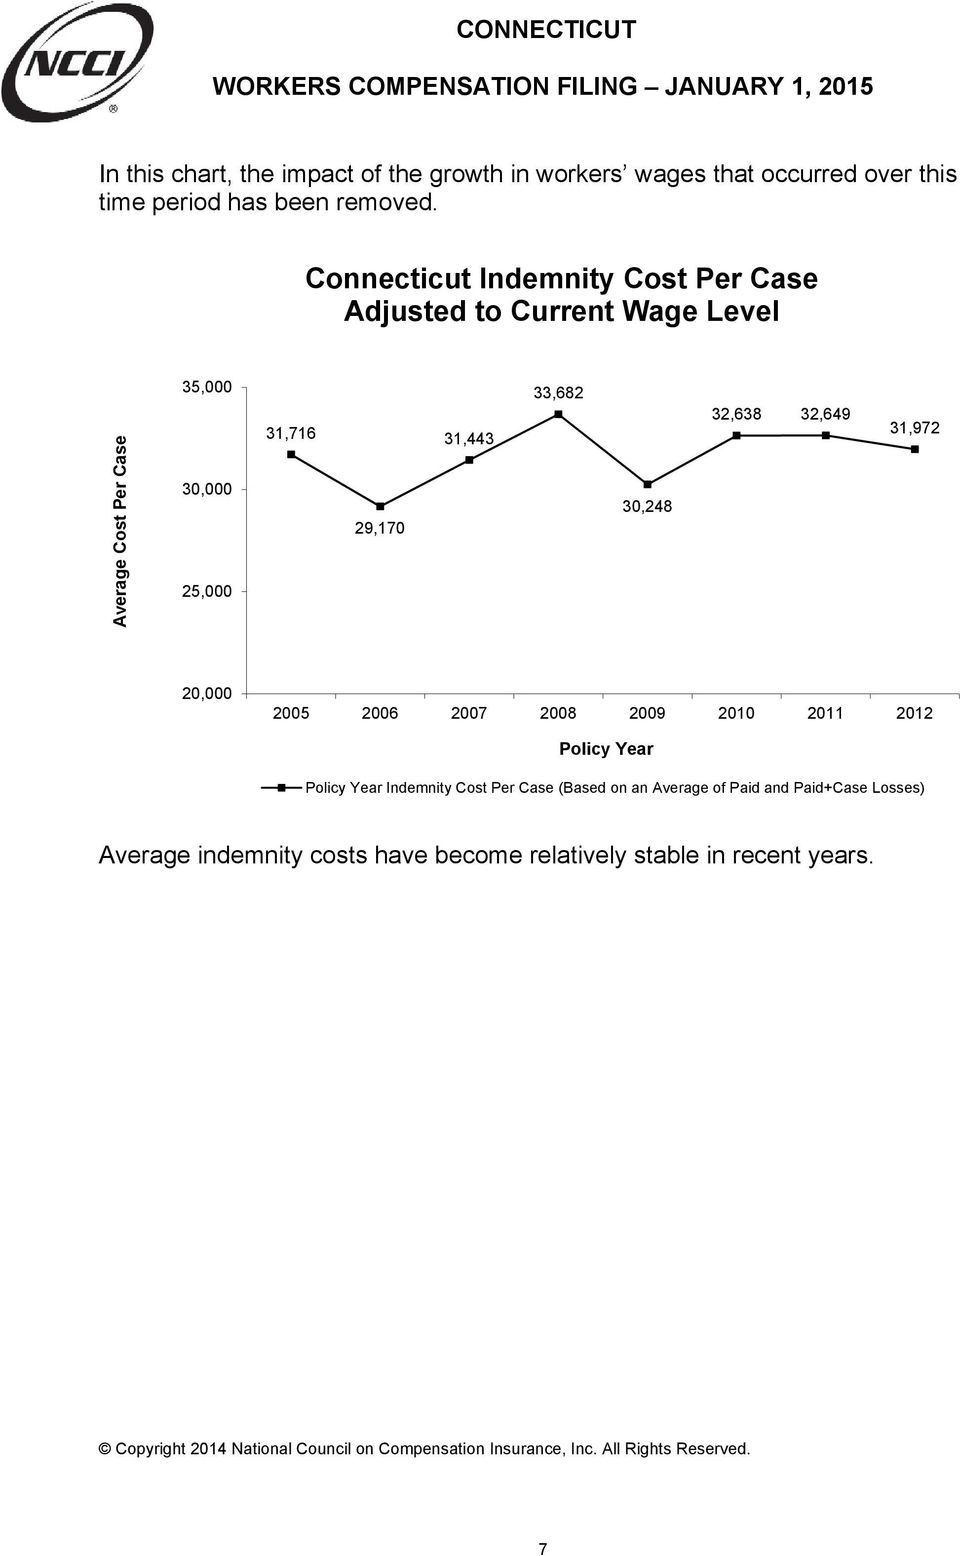 Connecticut Indemnity Cost Per Case Adjusted to Current Wage Level 35,000 33,682 Average Cost Per Case 30,000 25,000 31,716 31,443